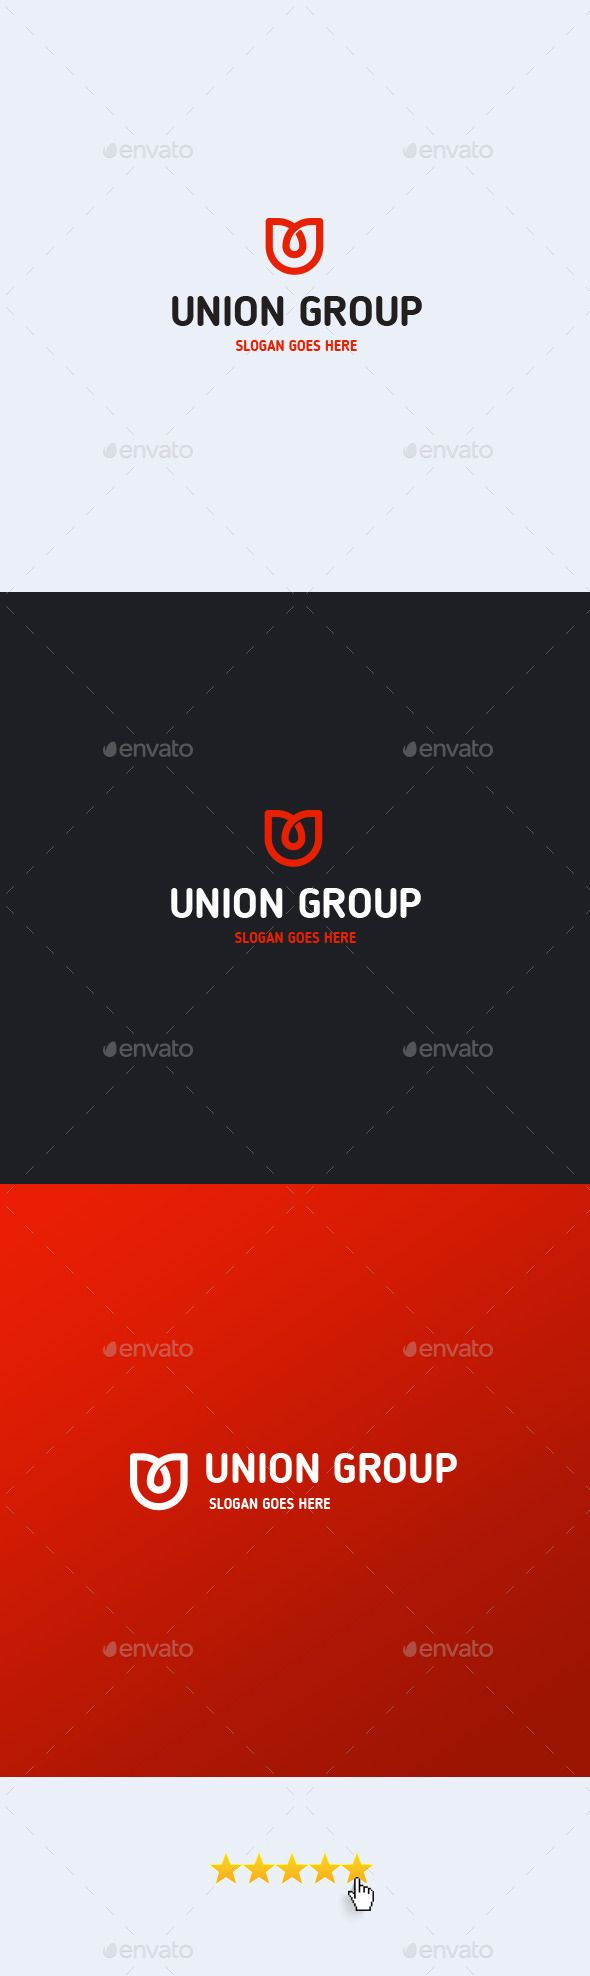 Union Group � Letter U - Logo Design Template Vector #logotype Download it here: http://graphicriver.net/item/union-group-letter-u-logo-template/12899803?s_rank=1074?ref=nesto